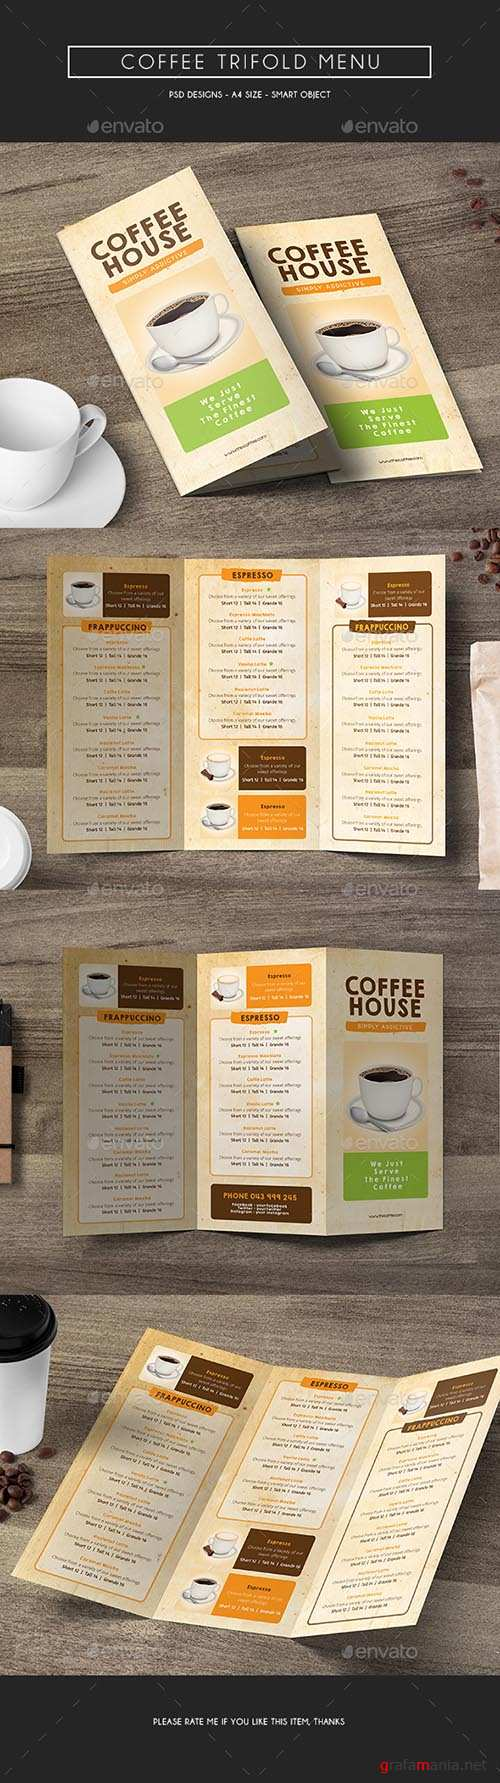 GR - Coffee Trifold Menu 14875947